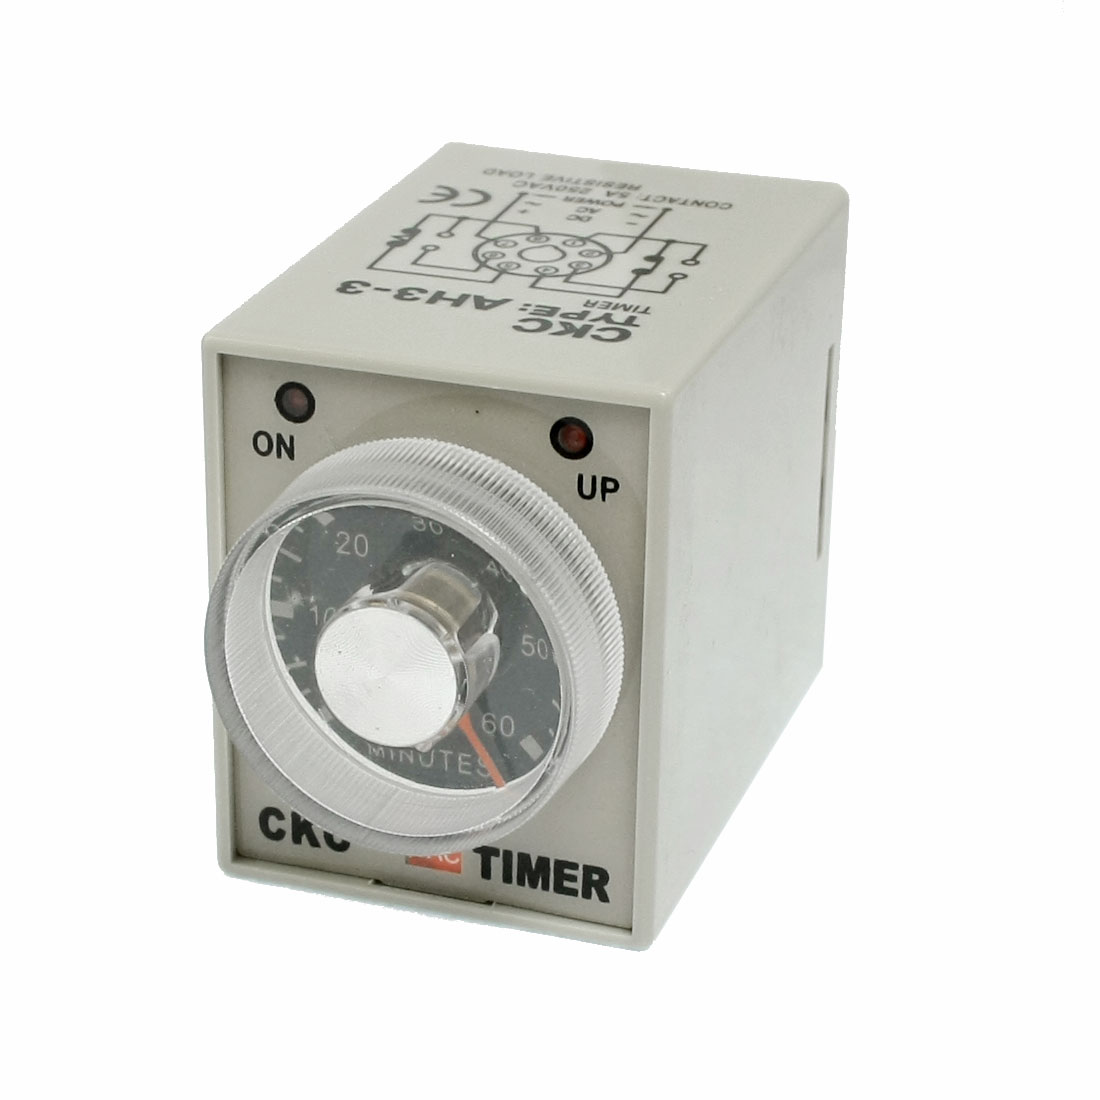 AH3-3 Power On AC 220V 0-60 Minutes Delay Time Relay Timer